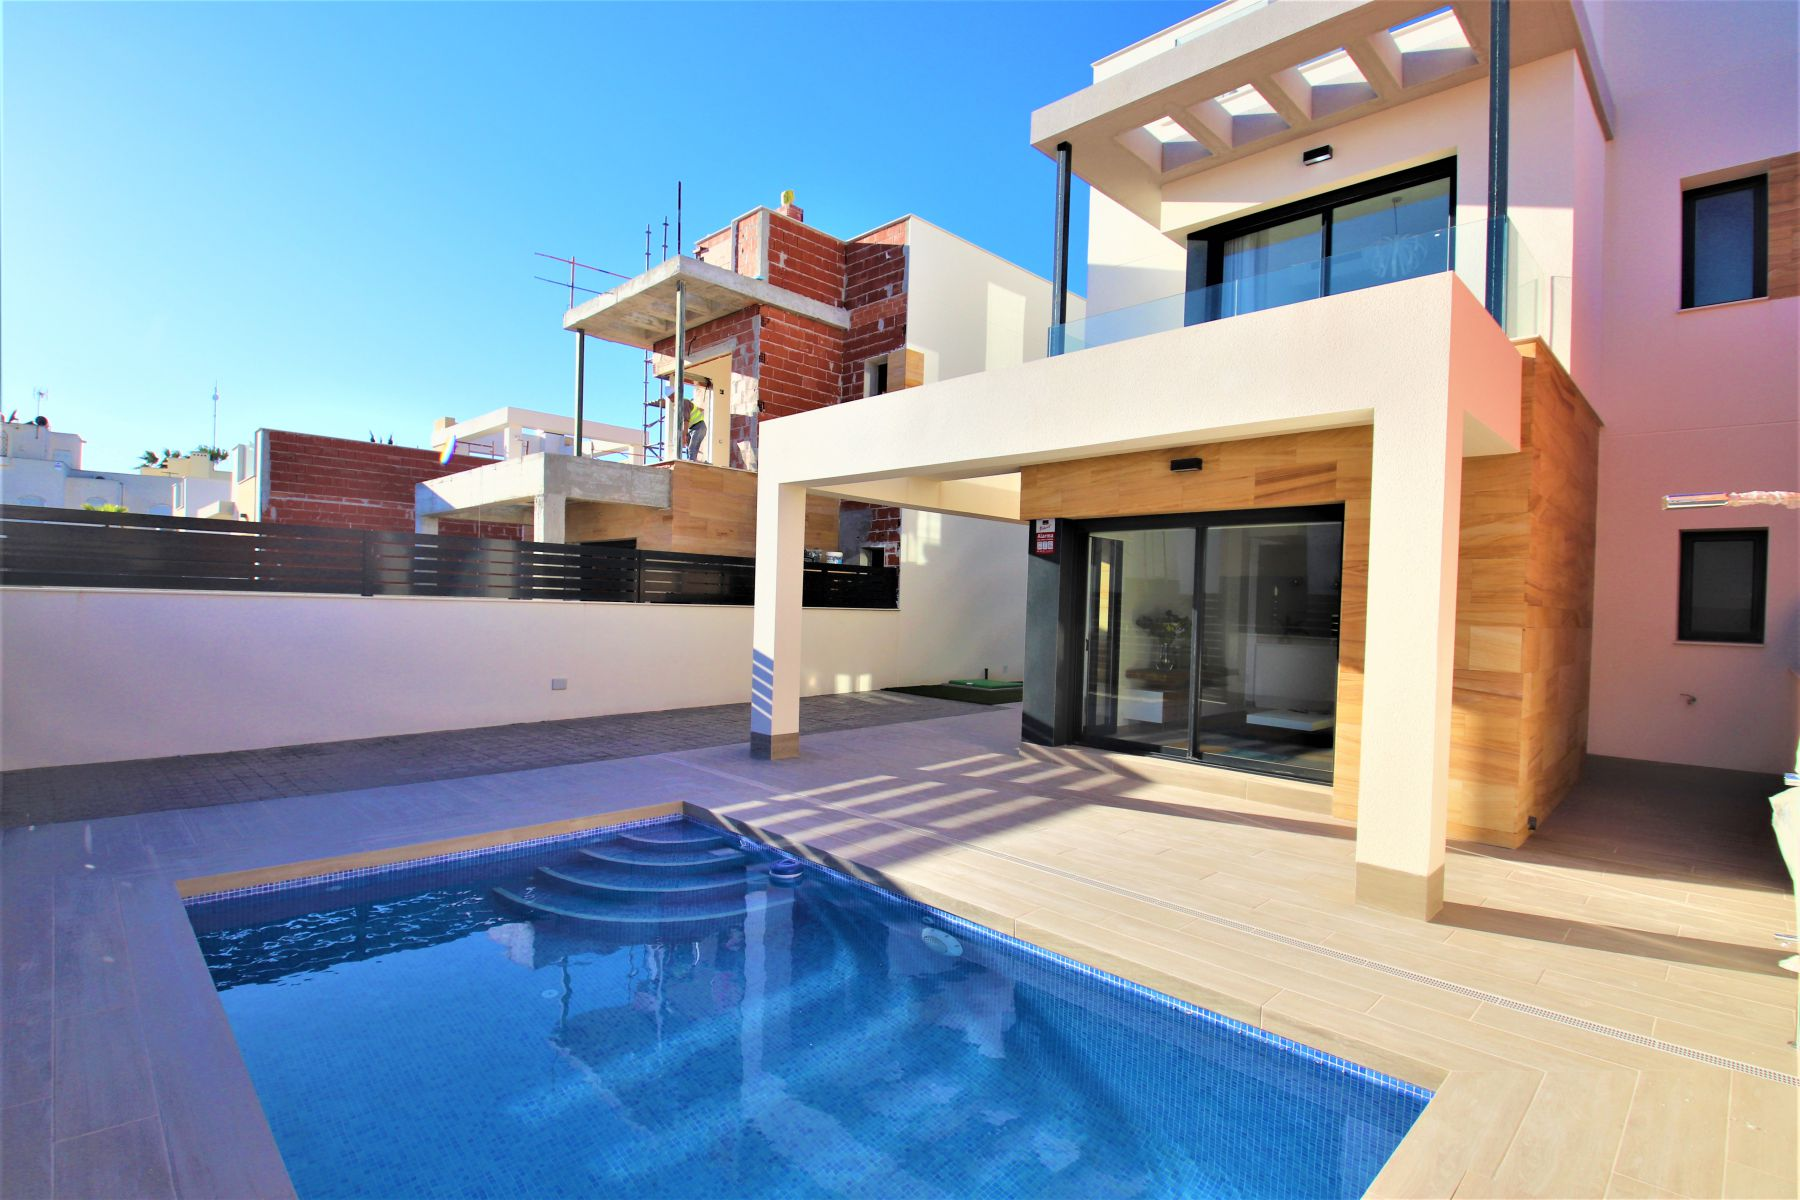 New Build 3 Bedrooms Villas With Swimming Pool For Sale in Torrevieja